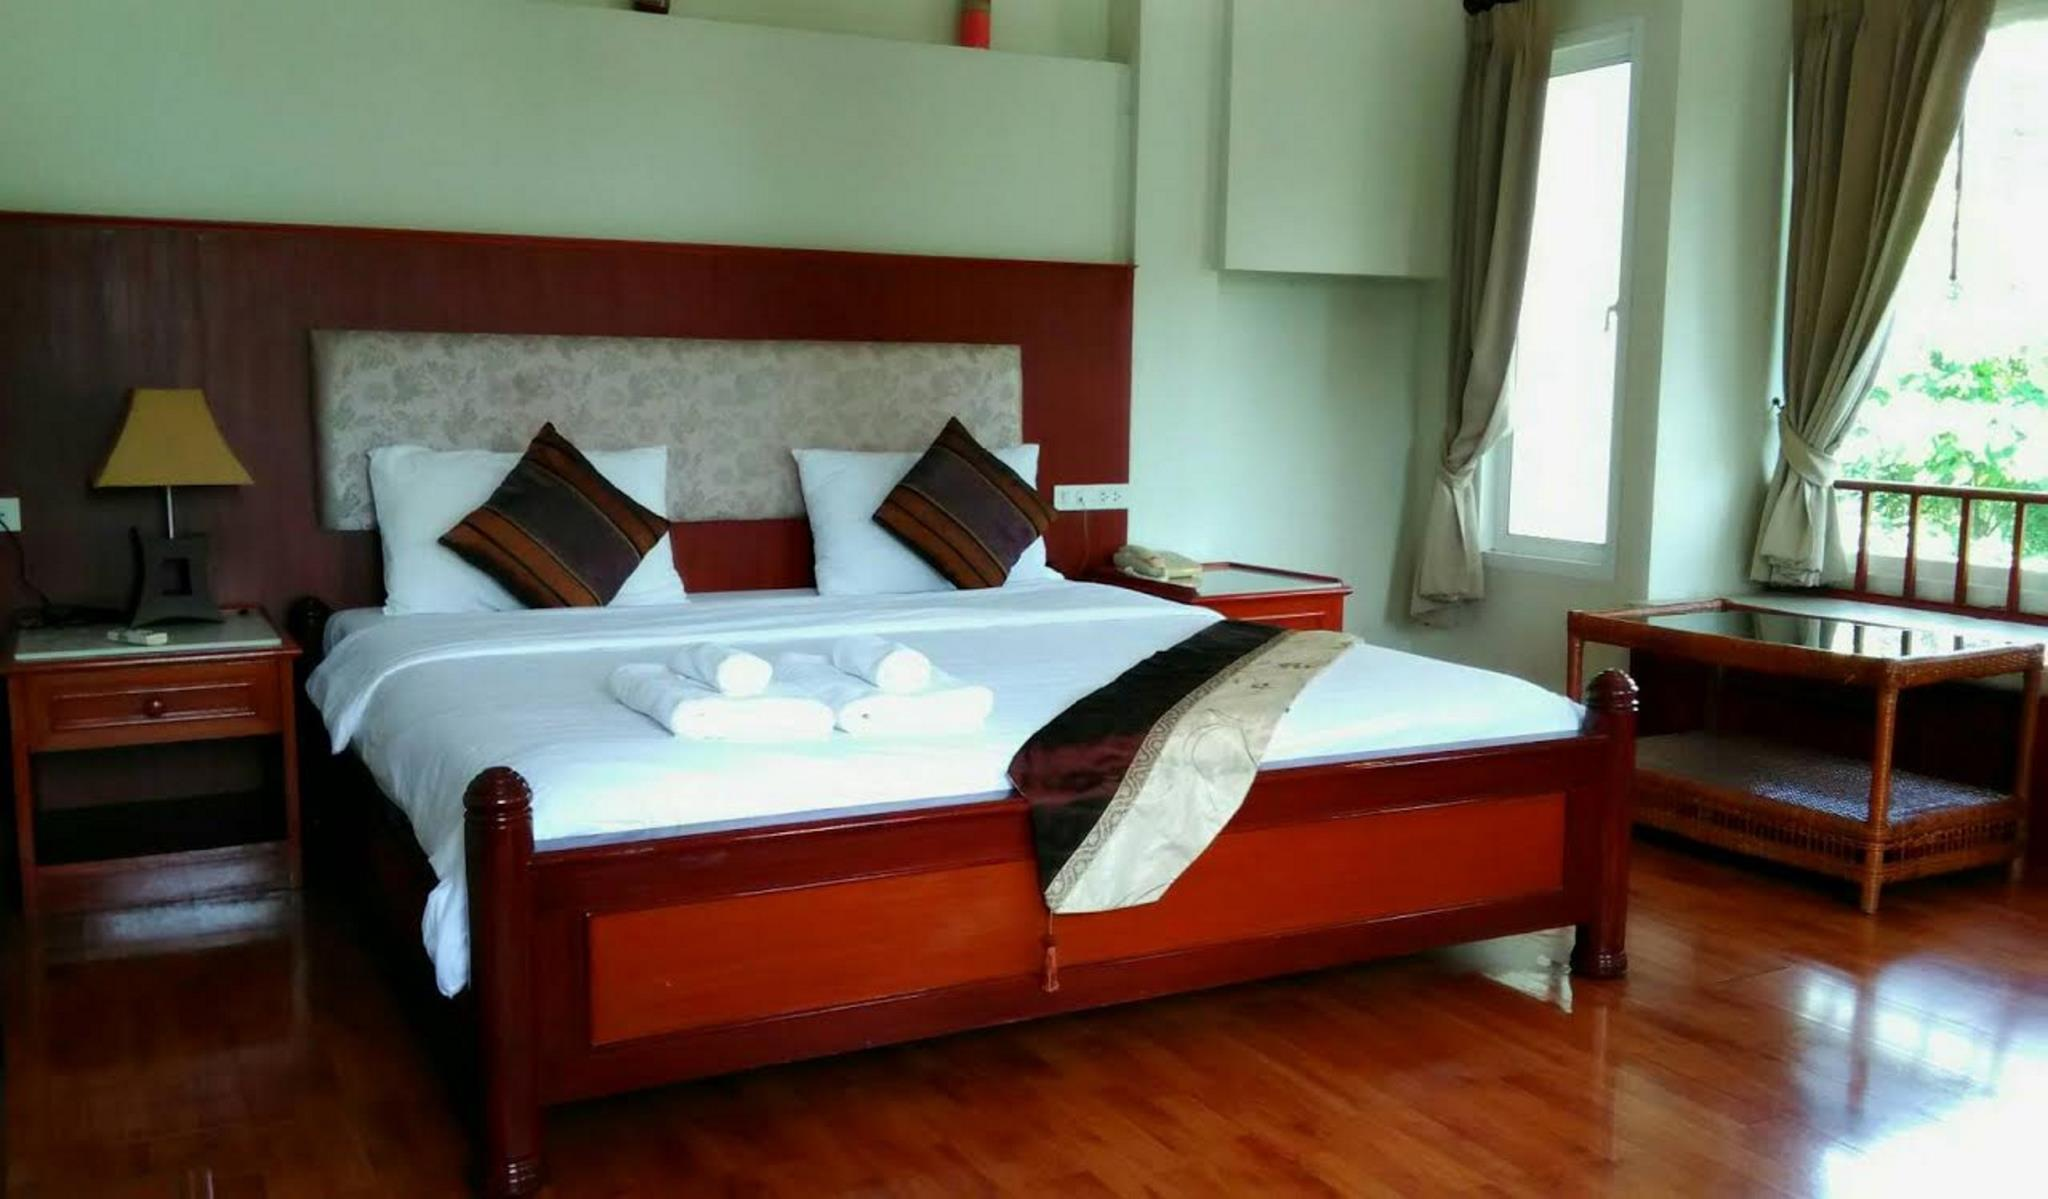 Superior Room Double Bed : 1 double bed